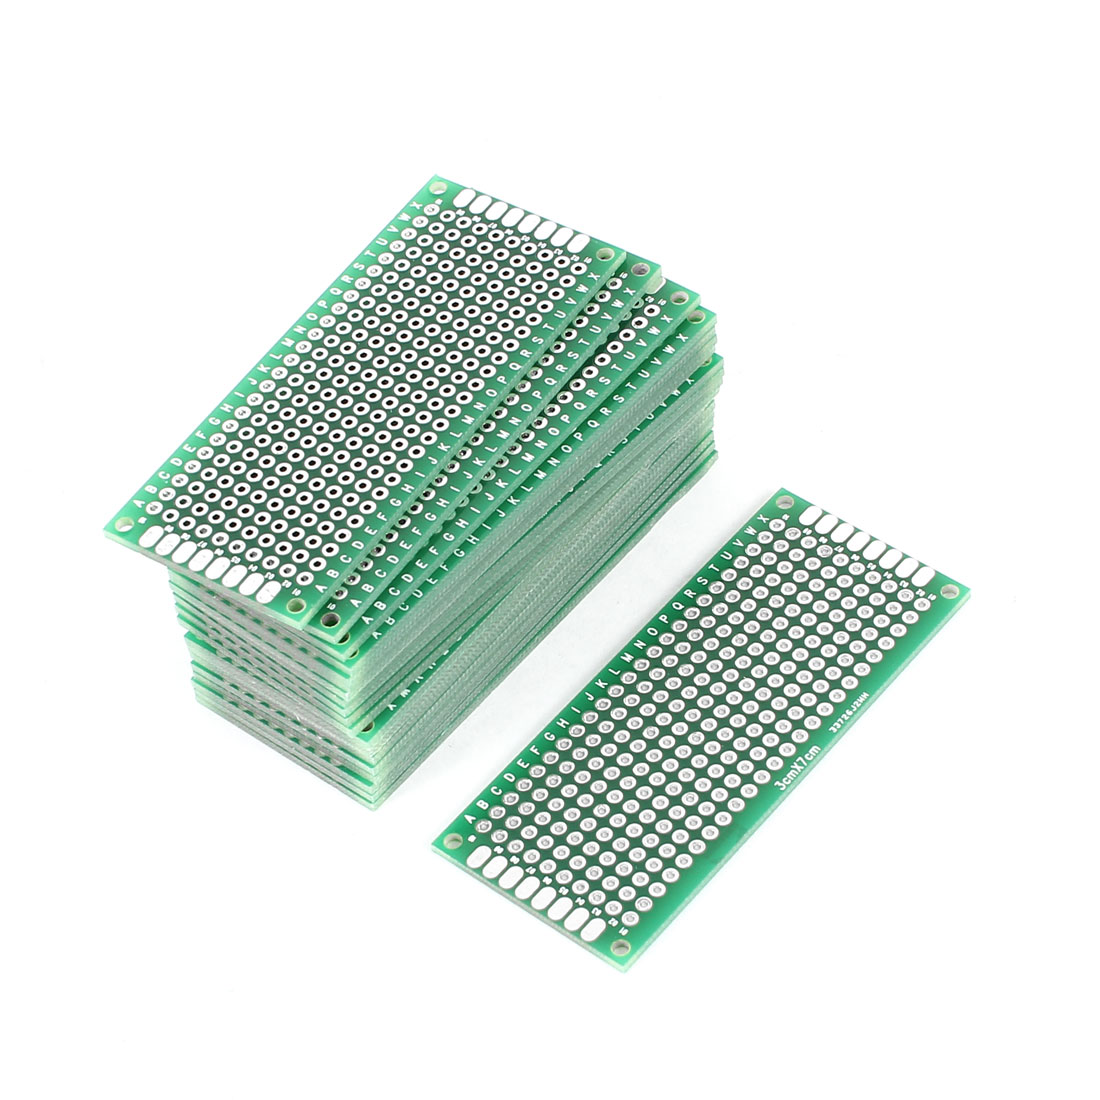 20 Pcs 3cm x 7cm Two Sides Prototyping Experiment Matrix Tinned DIY Universal PCB Print Circuit Board